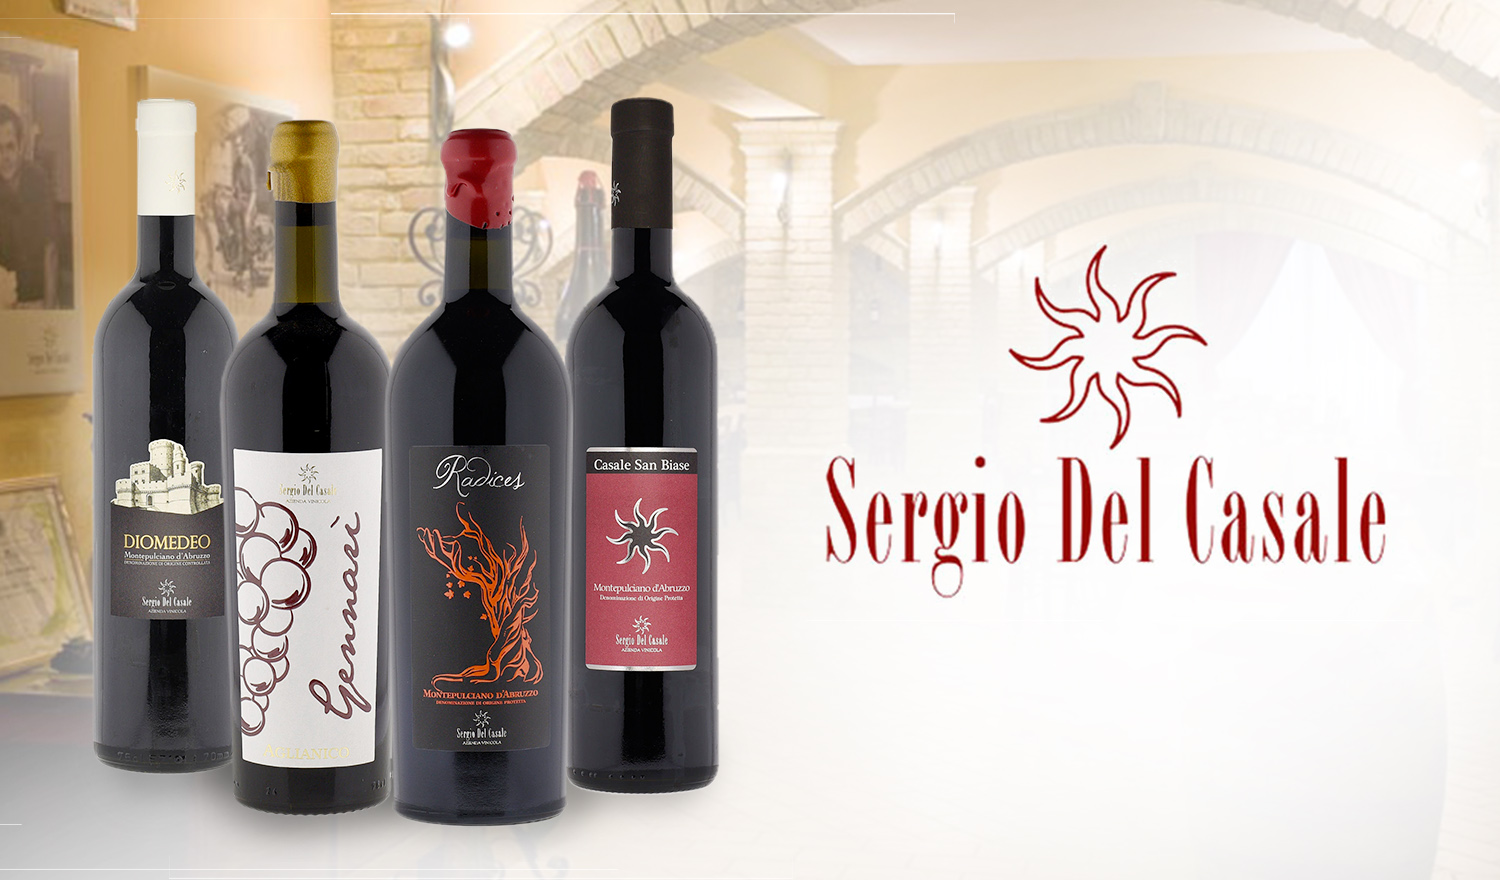 The Award-winning Italian wines from Sergio Del Casale